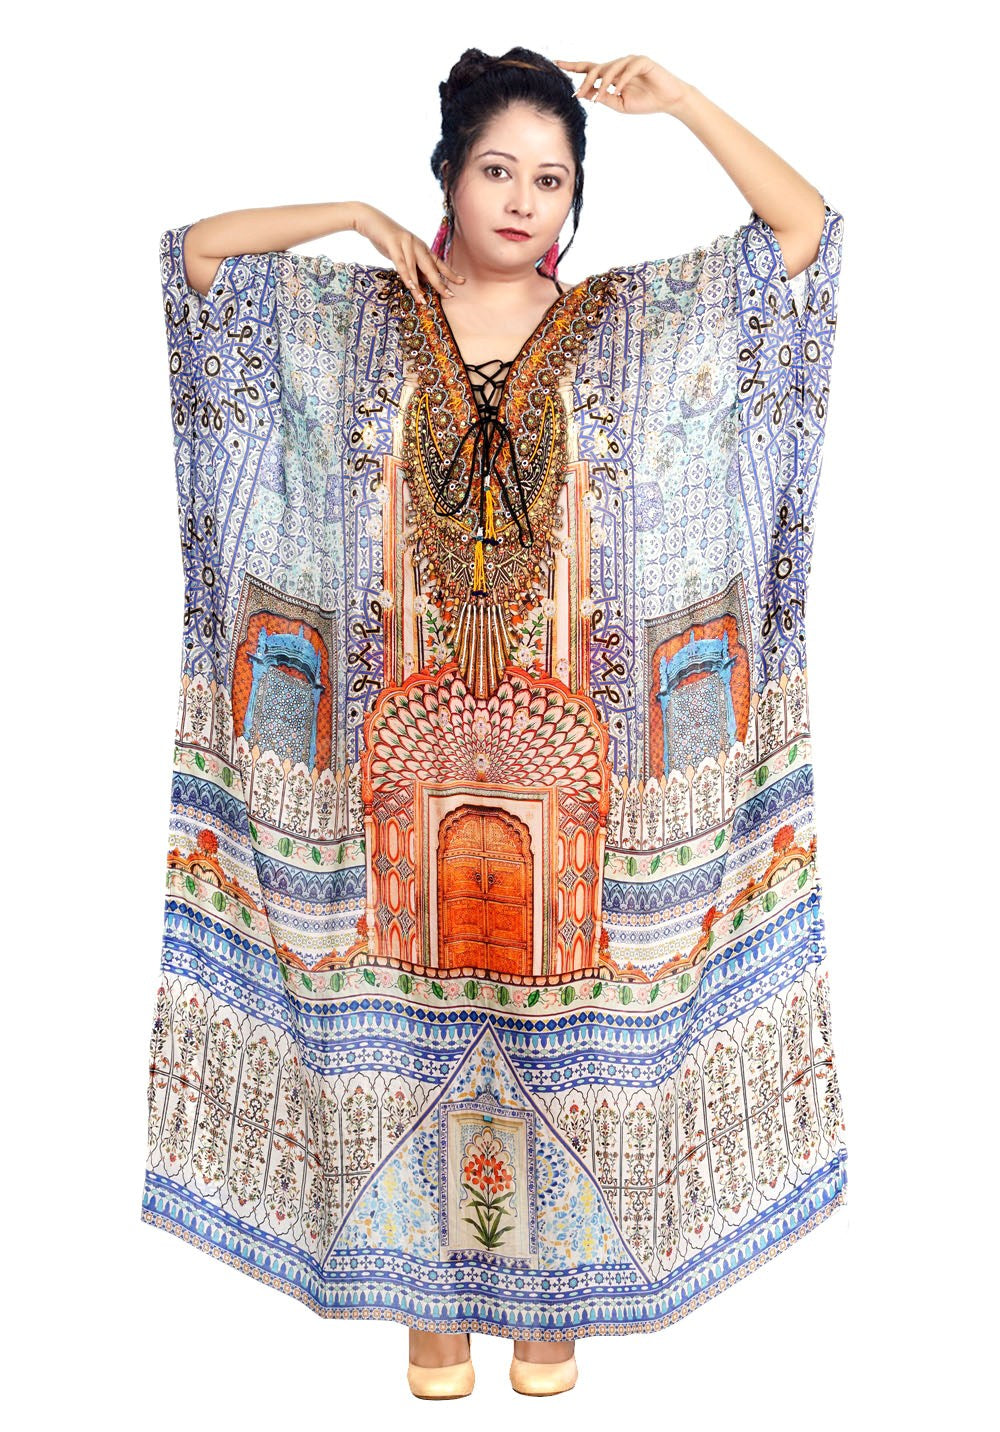 Lace Up kaftan Plus size kaftan Beautiful kaftan resort wear kaftan for women bikini kaftan designer Print kaftan - Silk kaftan